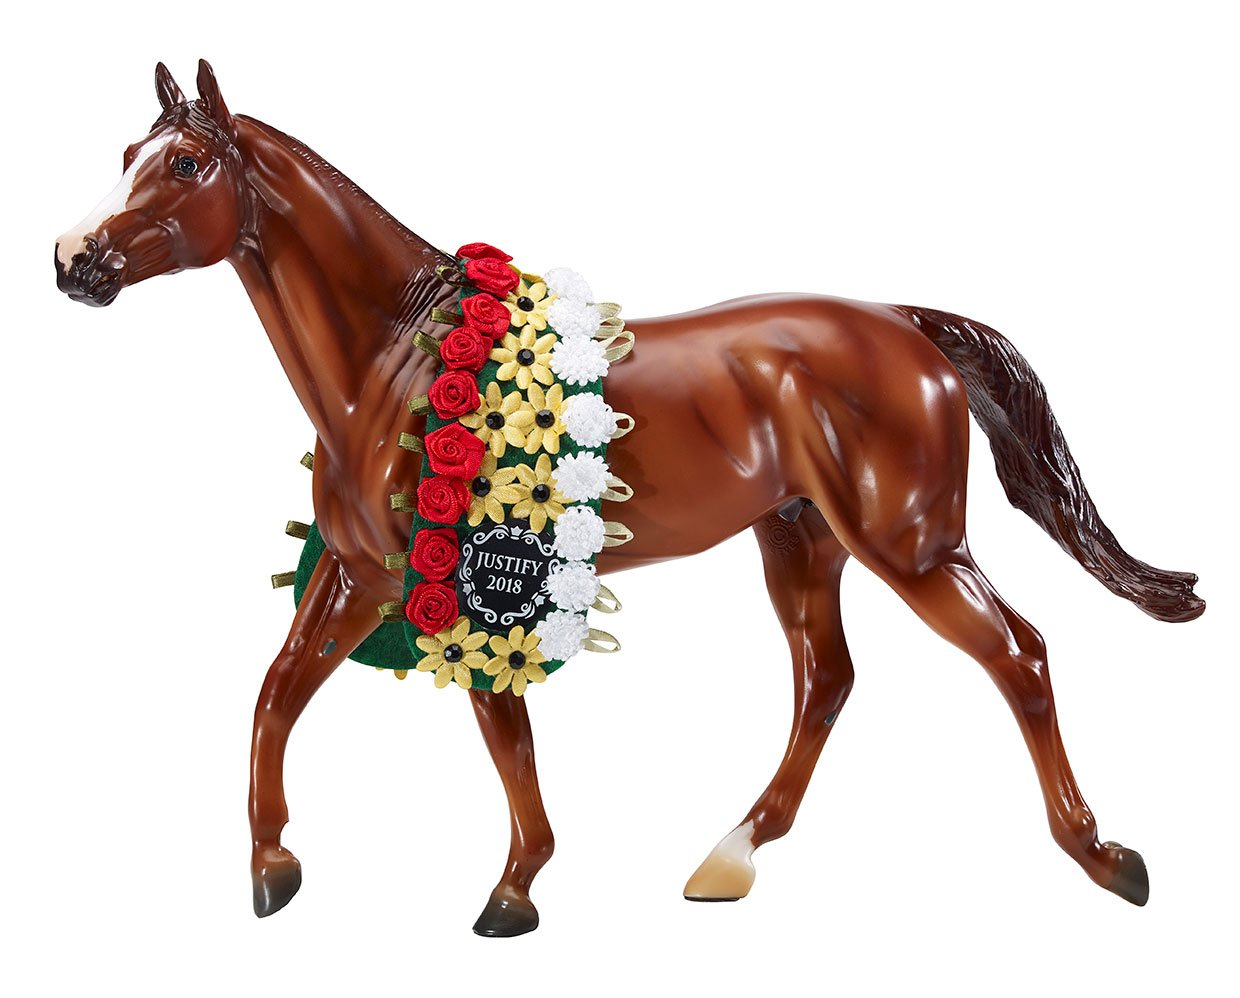 Breyer Traditional Horse #9300 Justify - Triple Crown Winner - New Factory Sealed